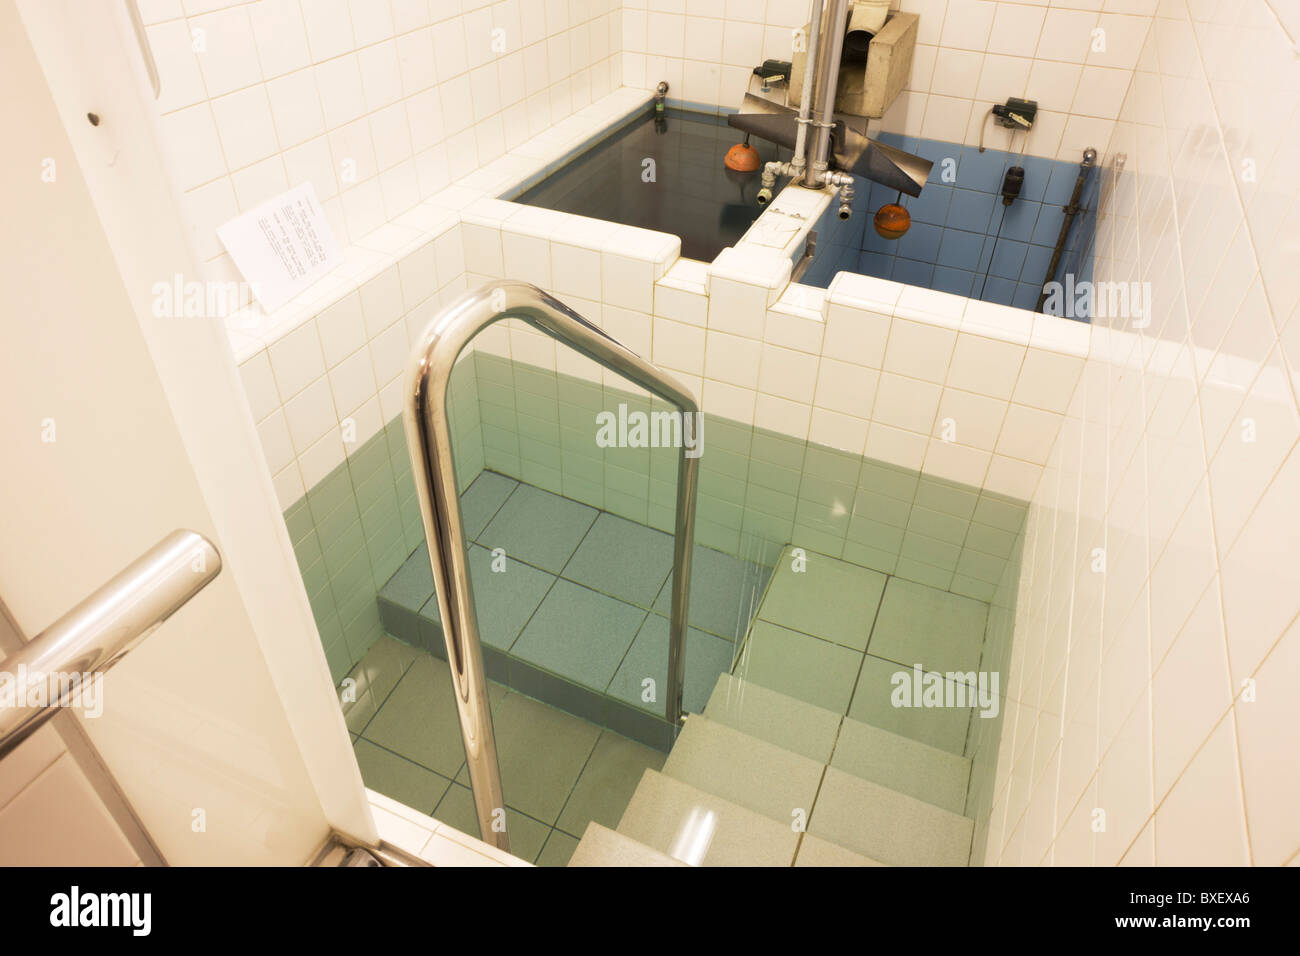 The Jewish faith Mikveh baths where recent converts to Judaism bathe in private, at the Sternberg Centre. London. - Stock Image